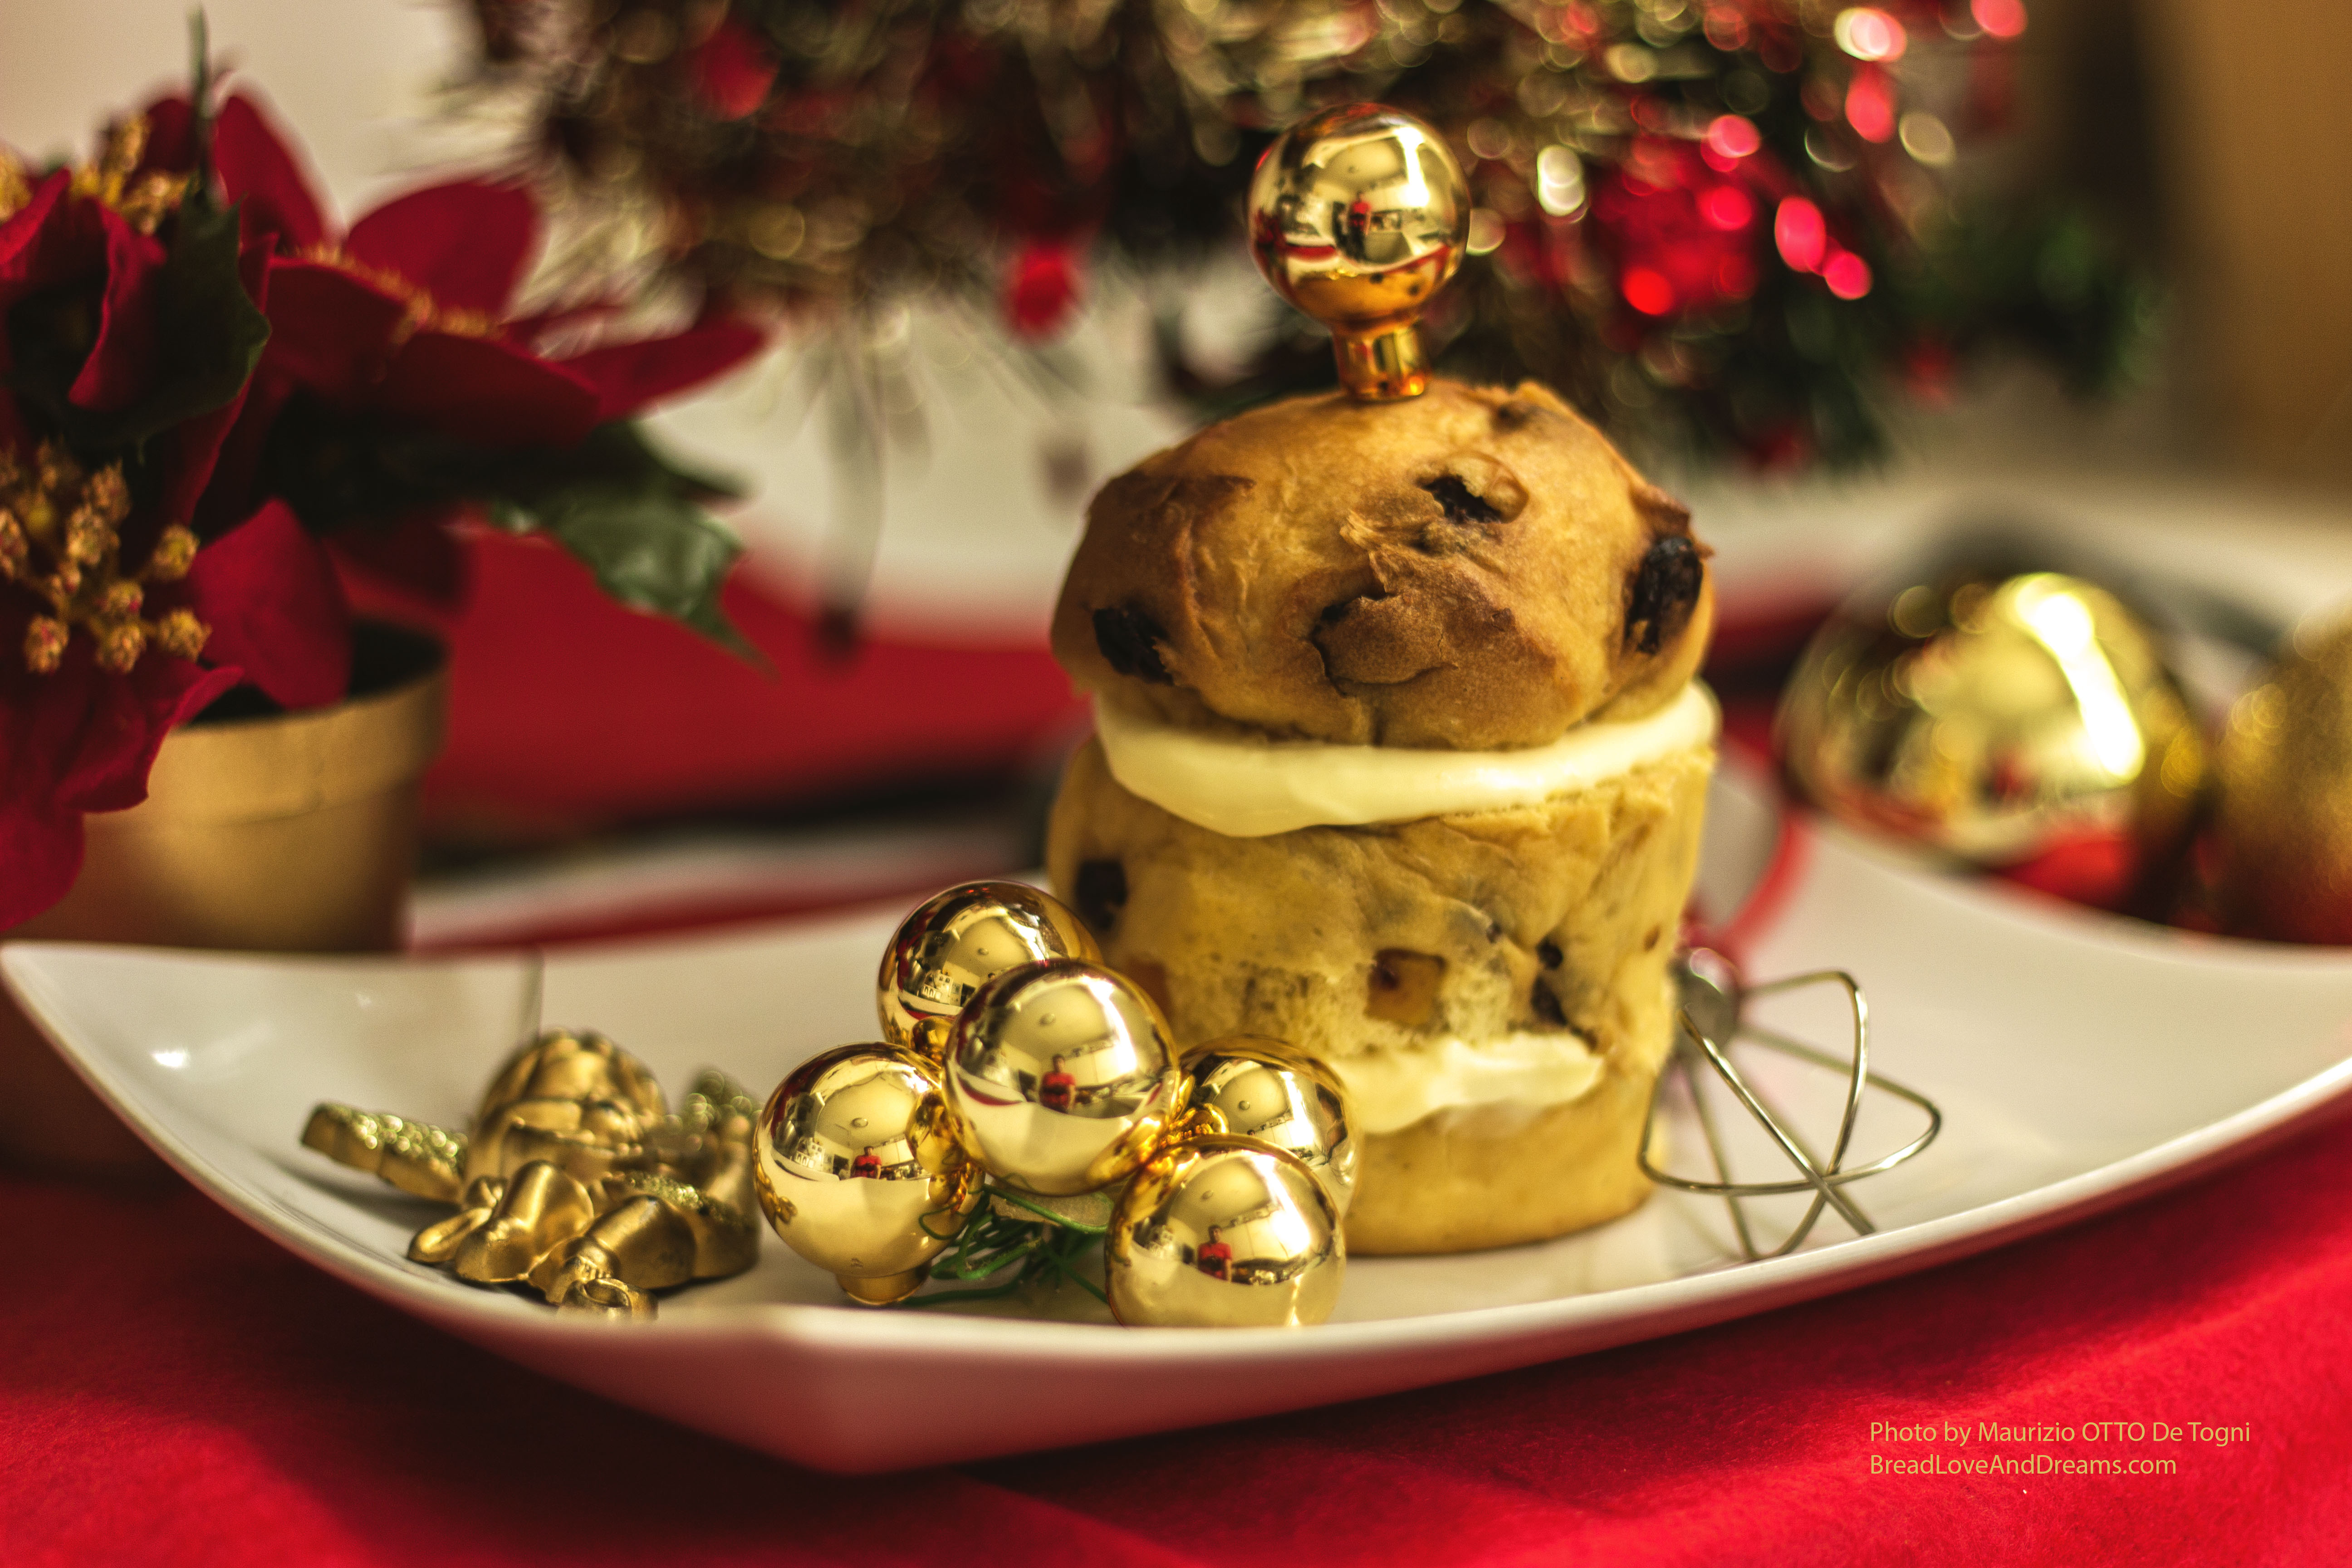 Buon Natale! The Festive Table Cooking Class